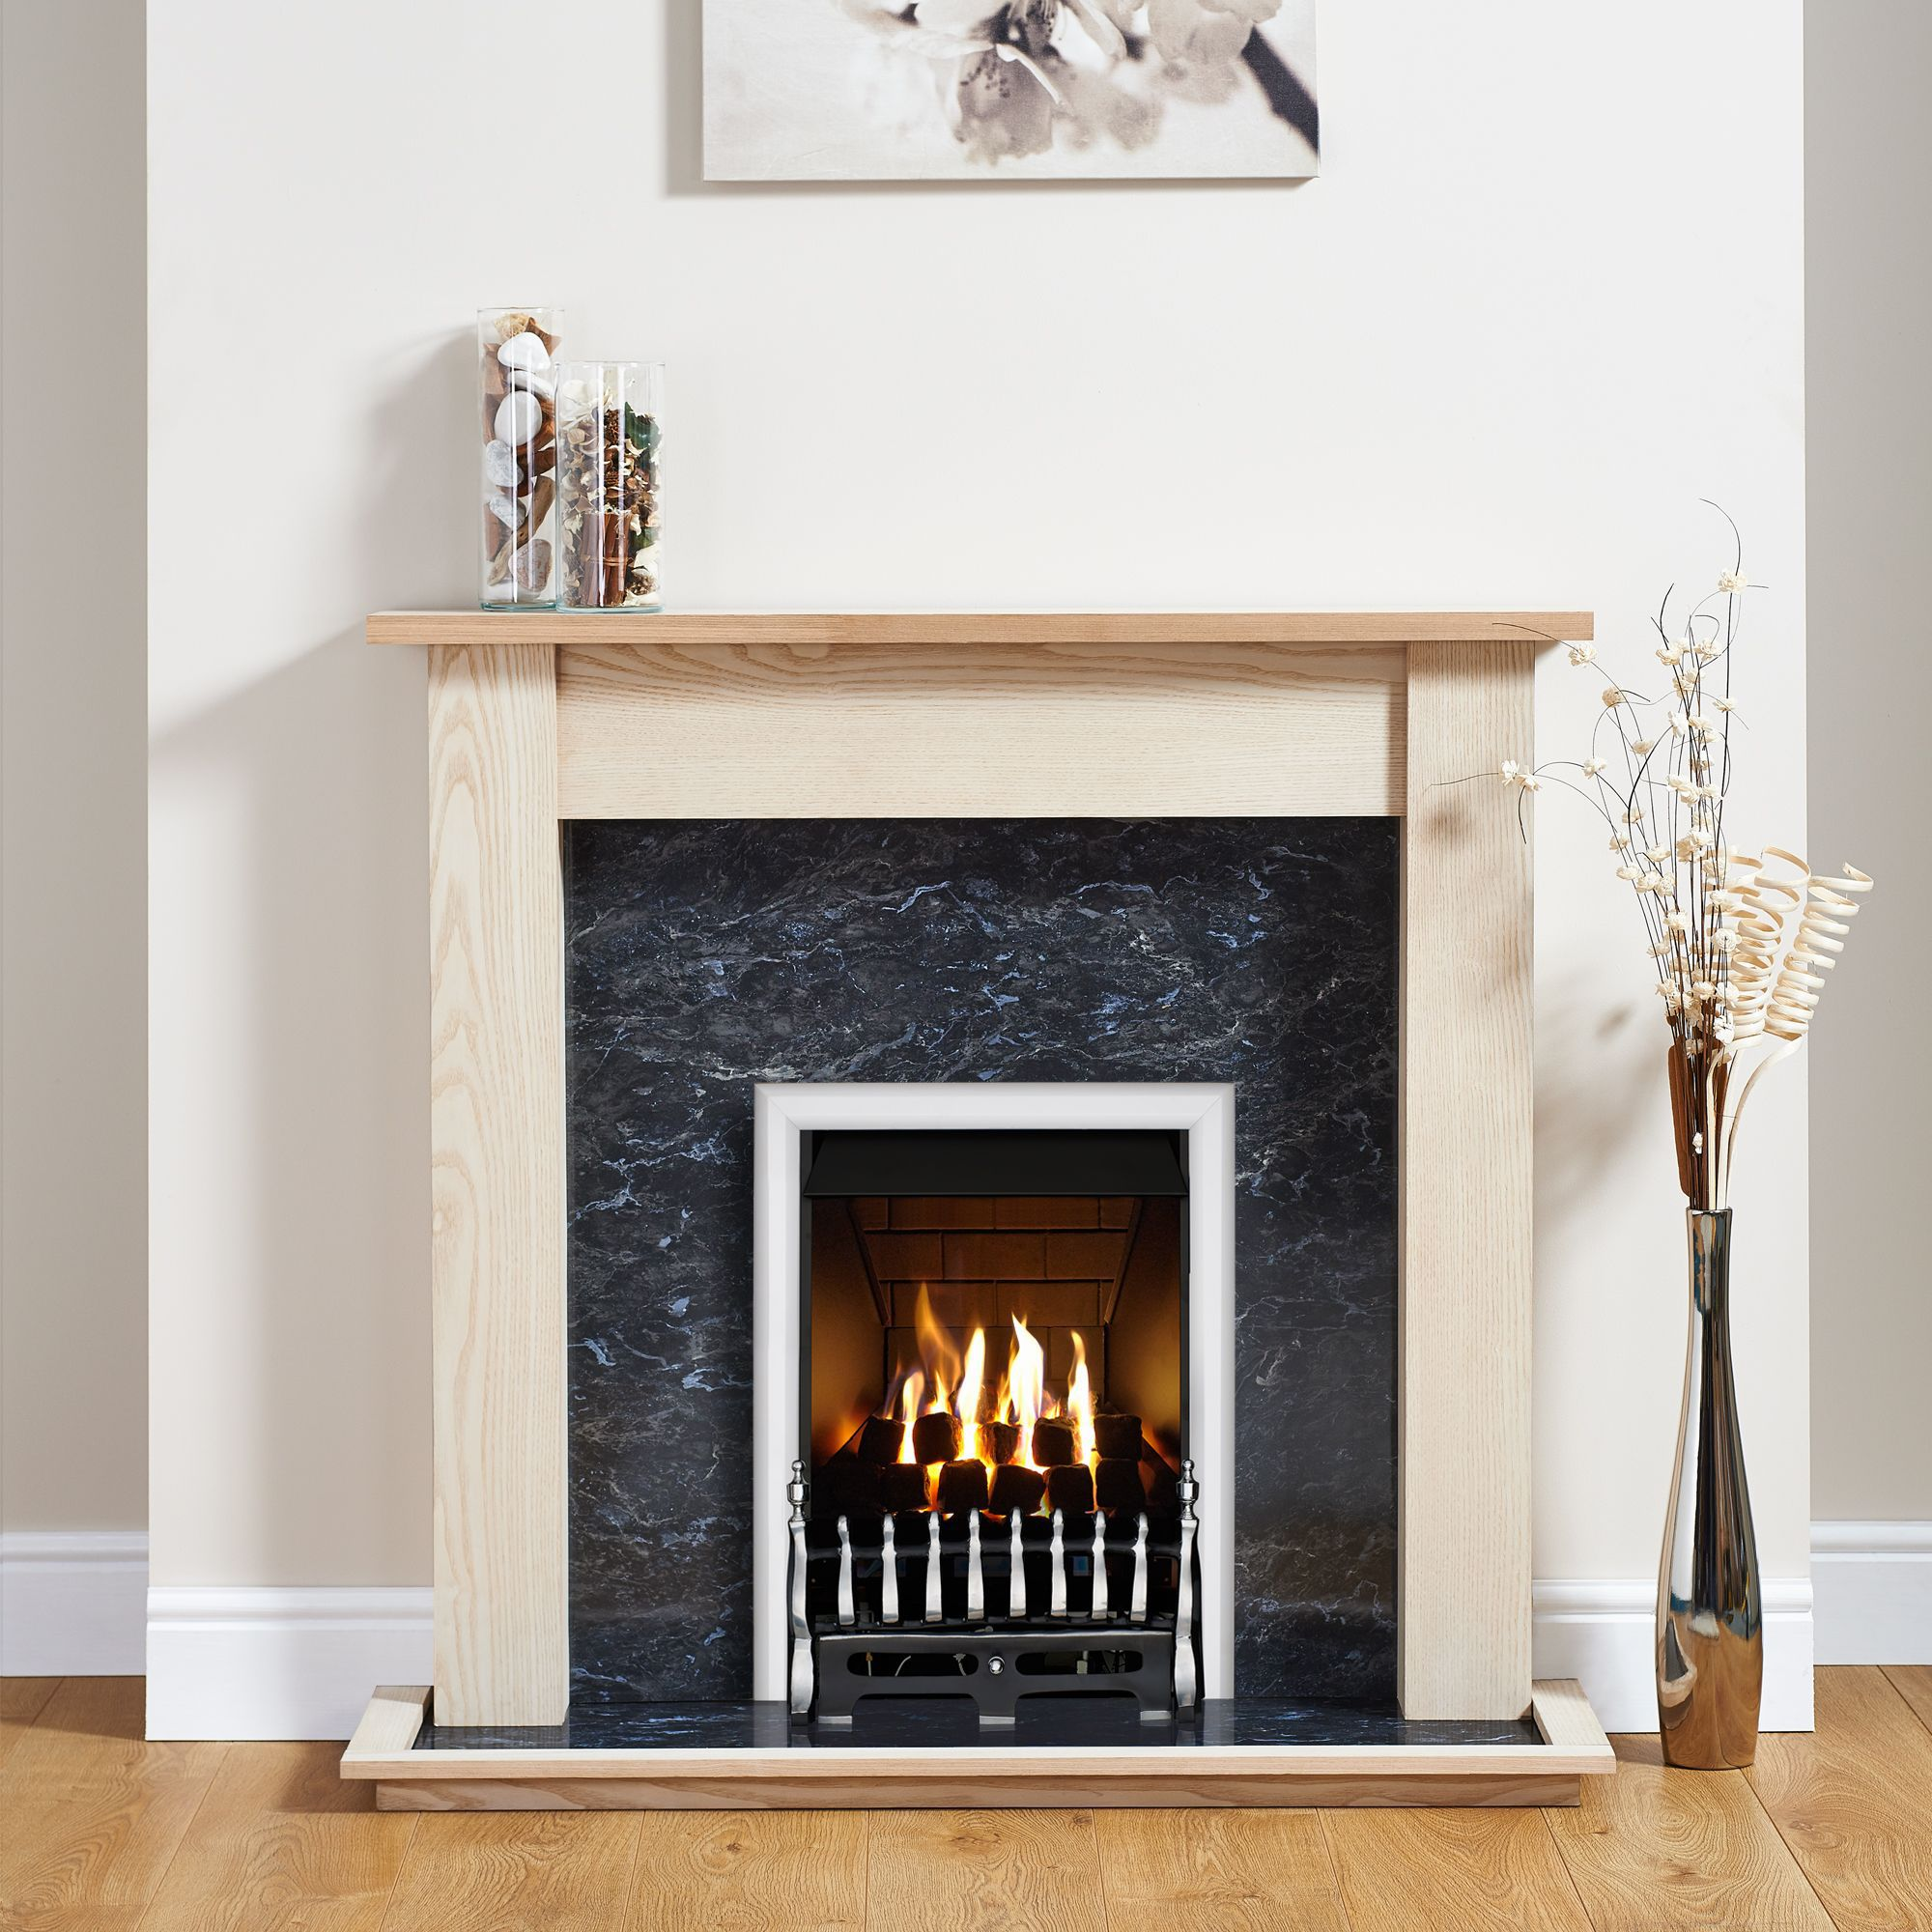 and image surround electric projects ana white furniture diy gas mantel fireplace